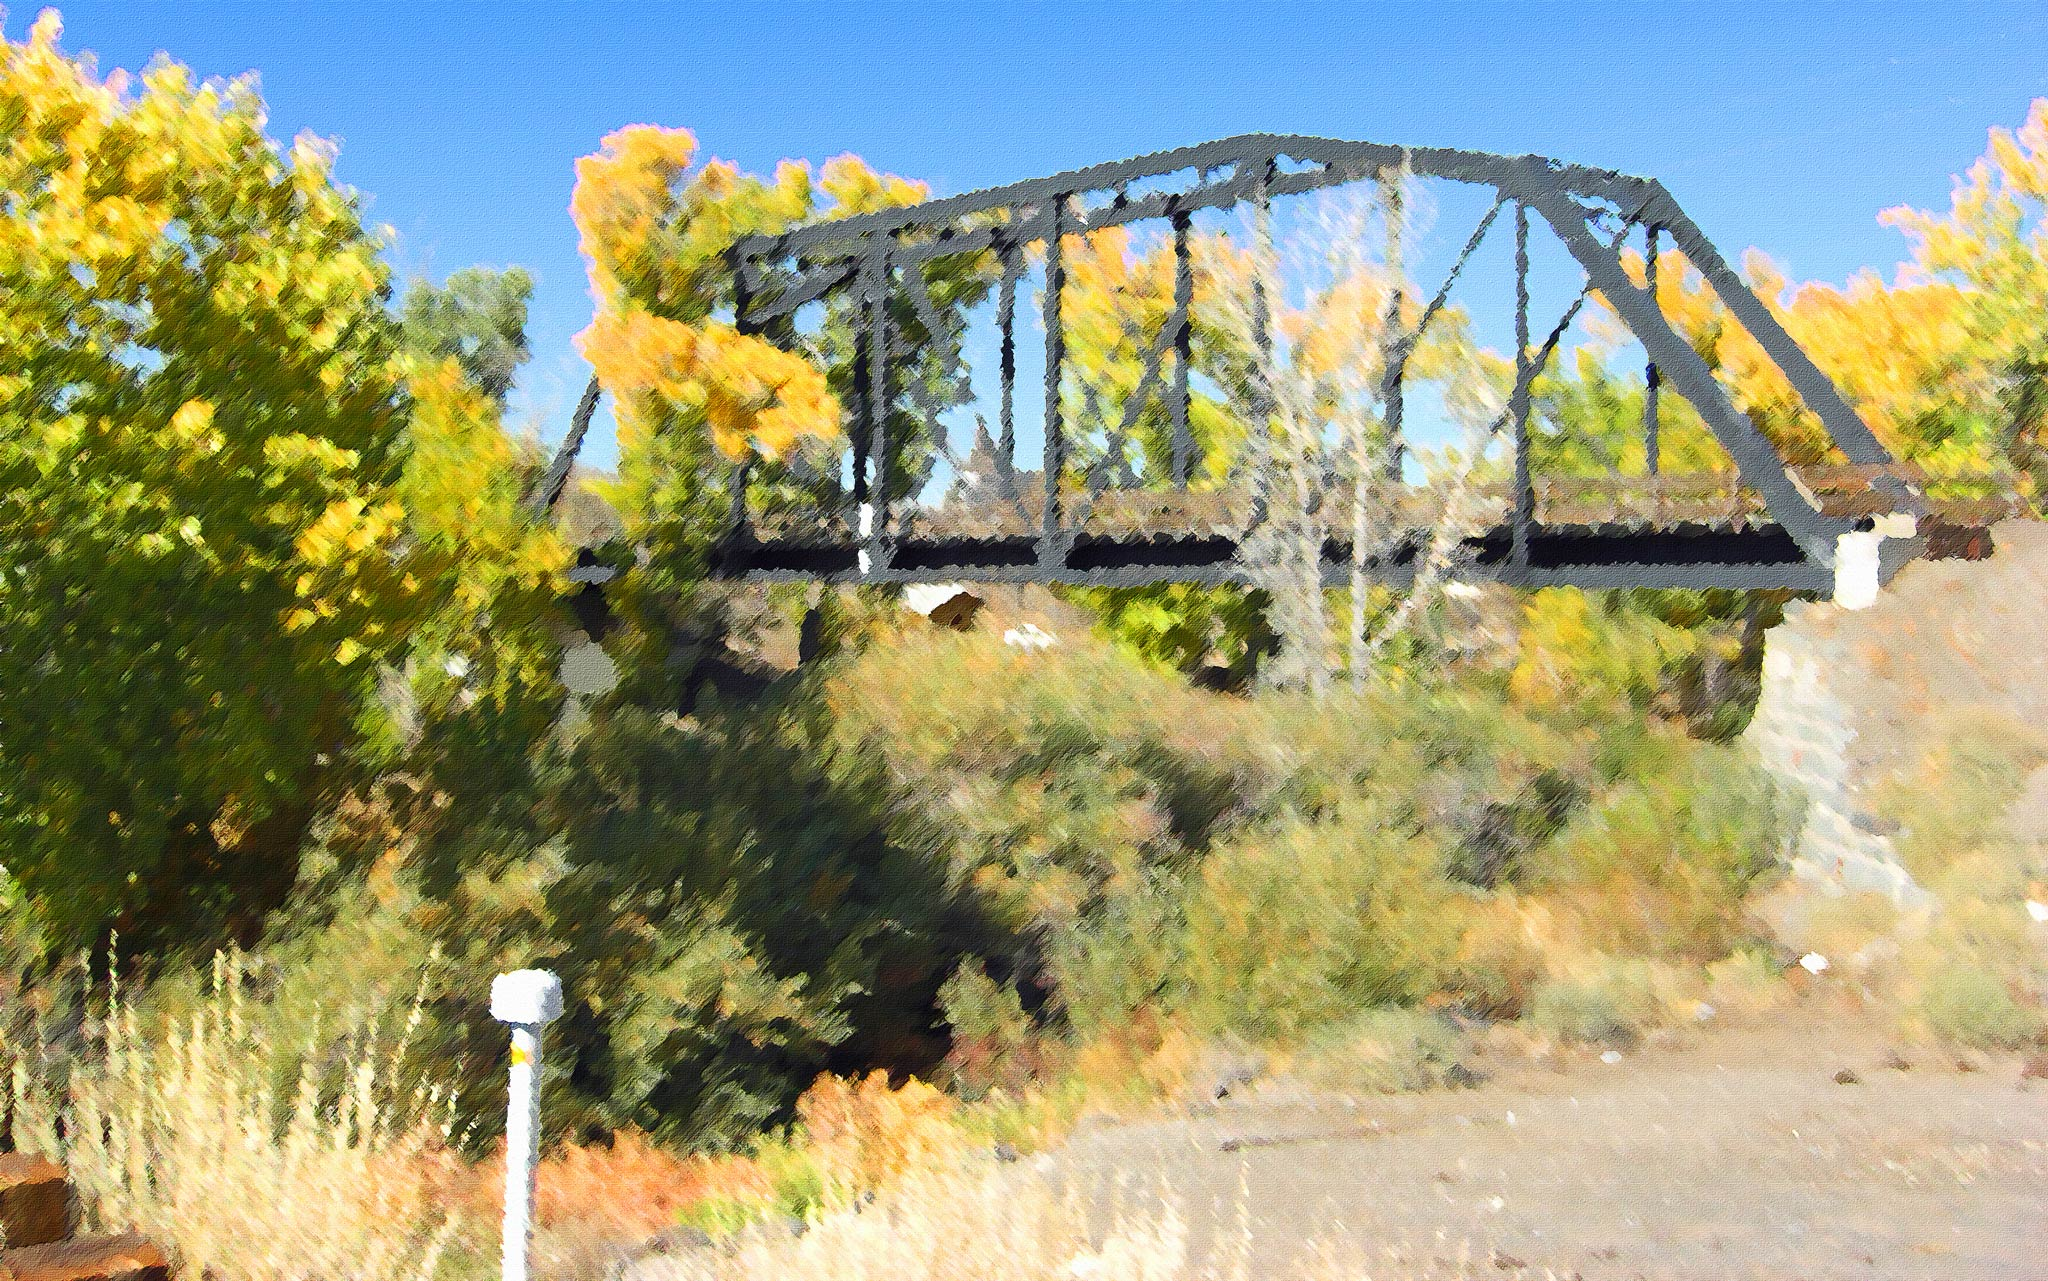 Oil-RR-Bridge-Mod-10-22-09-CIMG0551